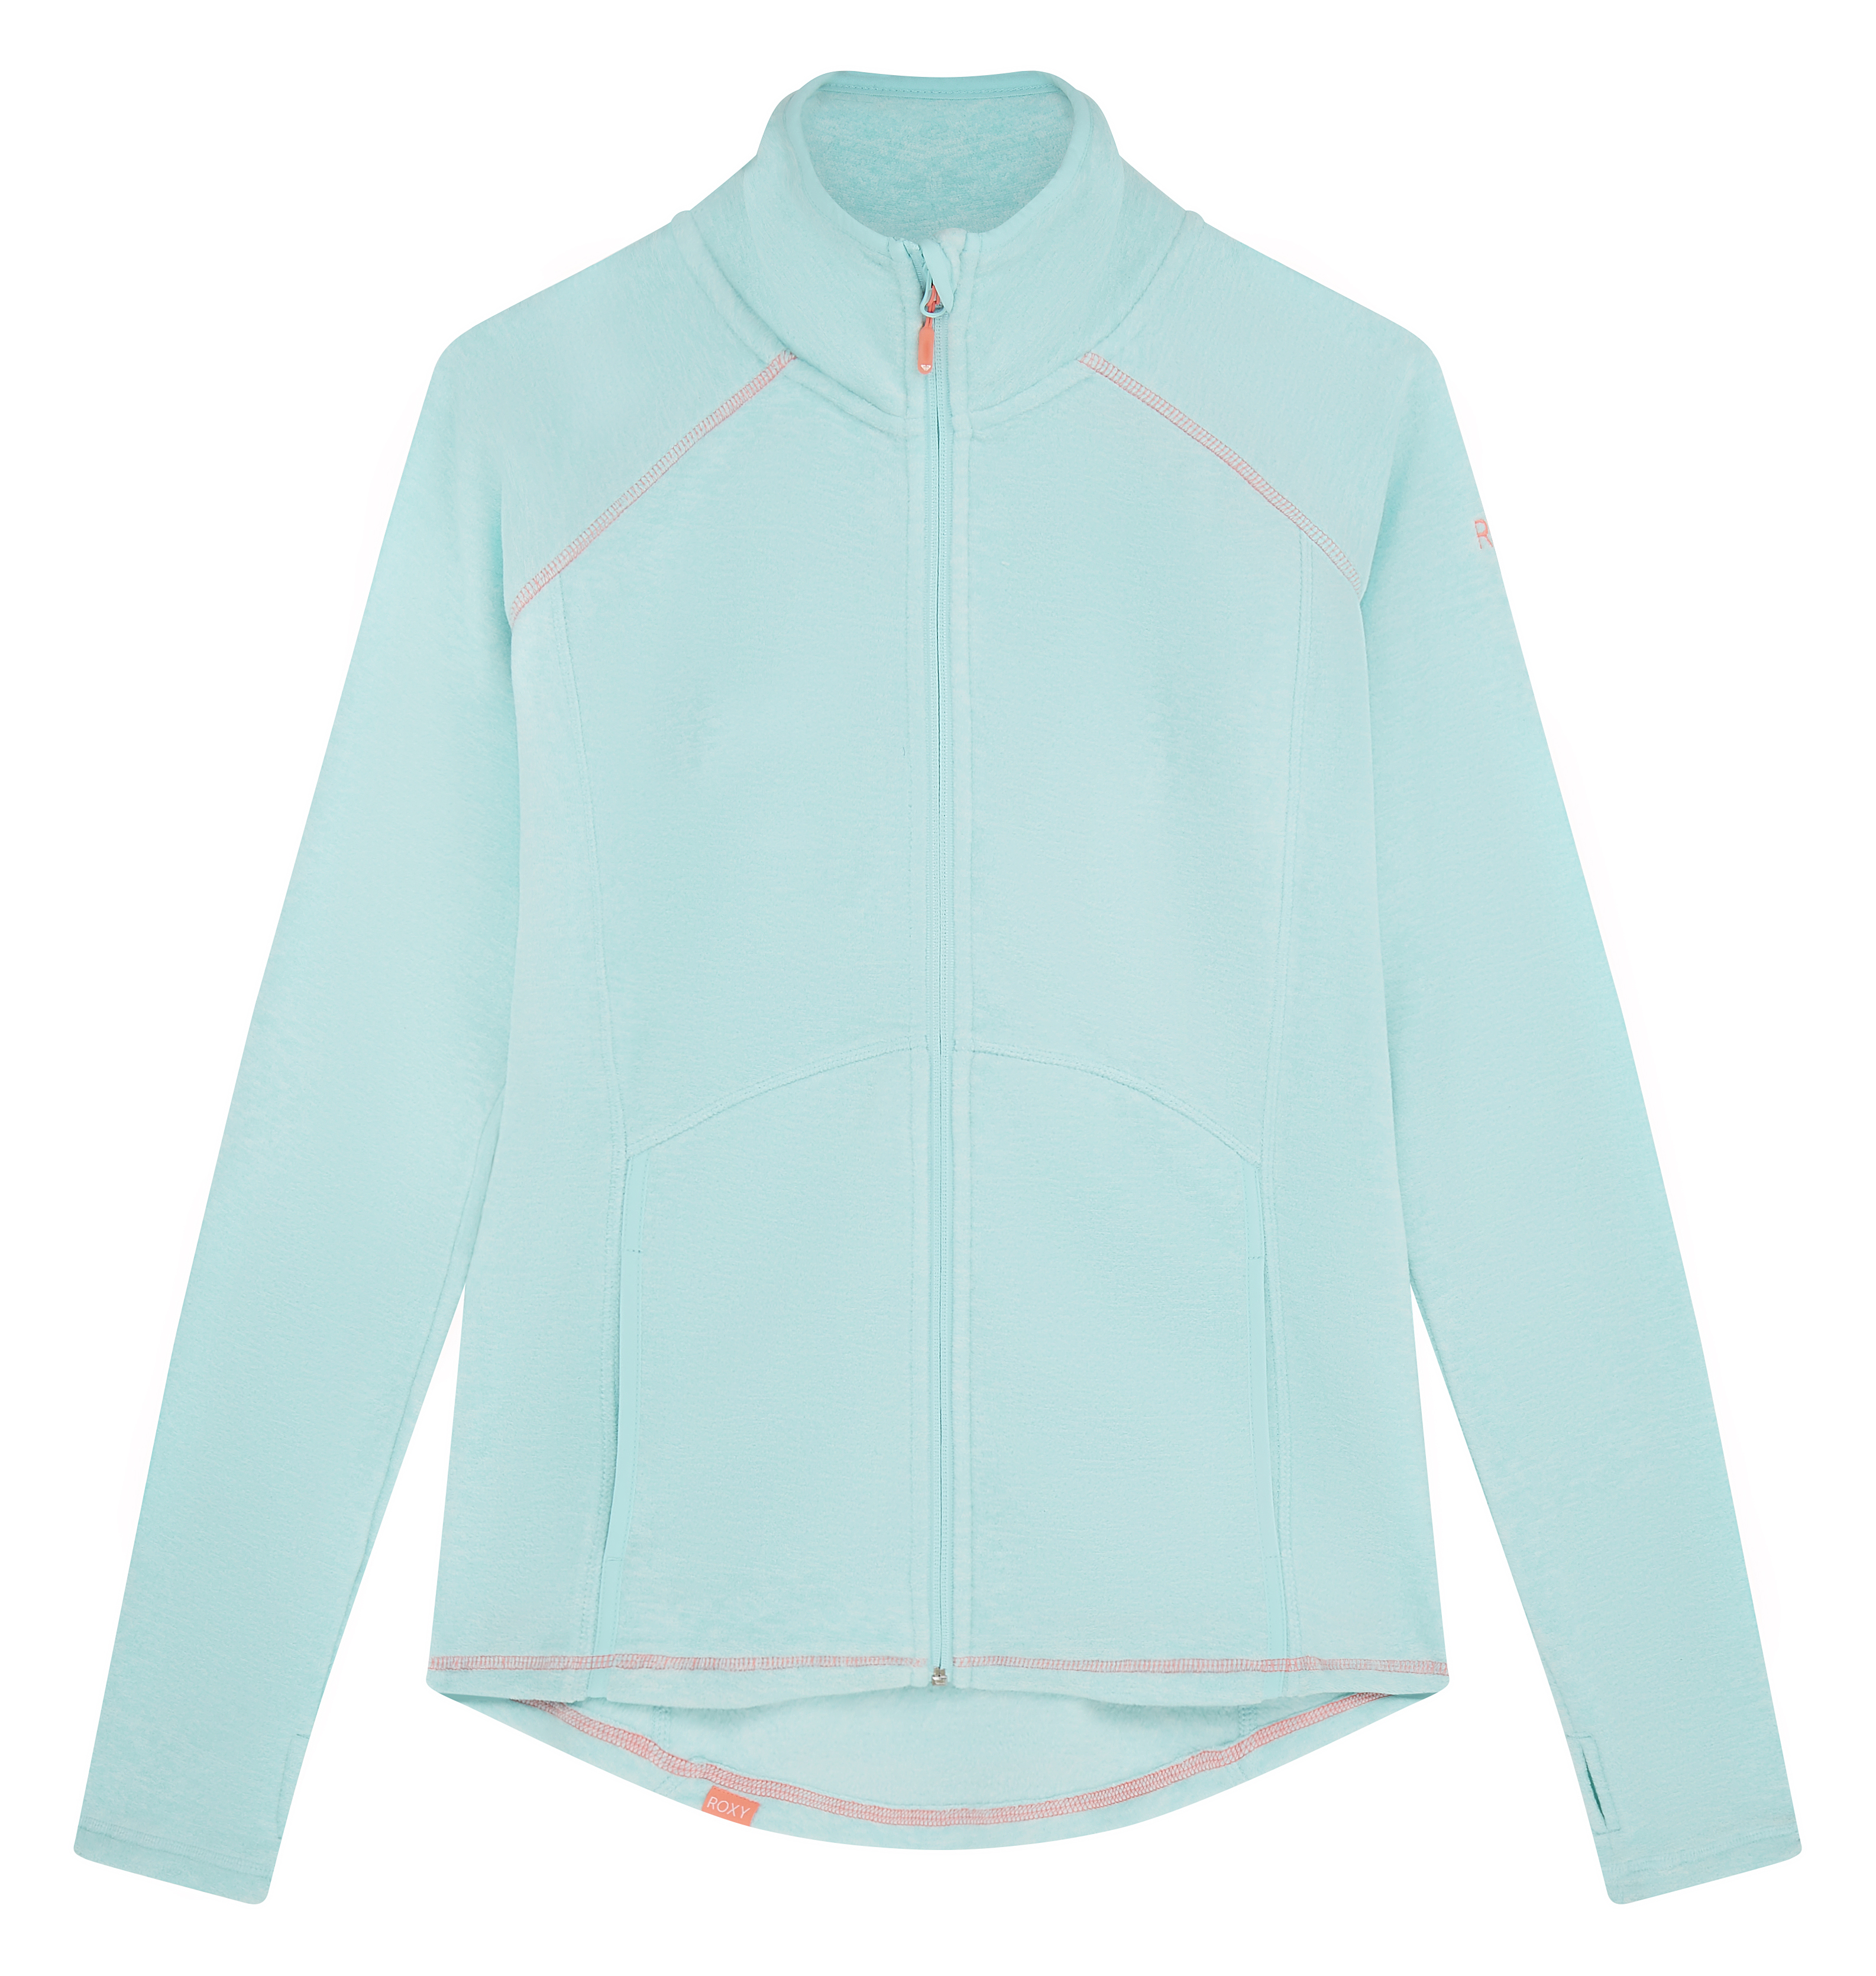 Roxy Harmony Full Zip Fleece in Blue